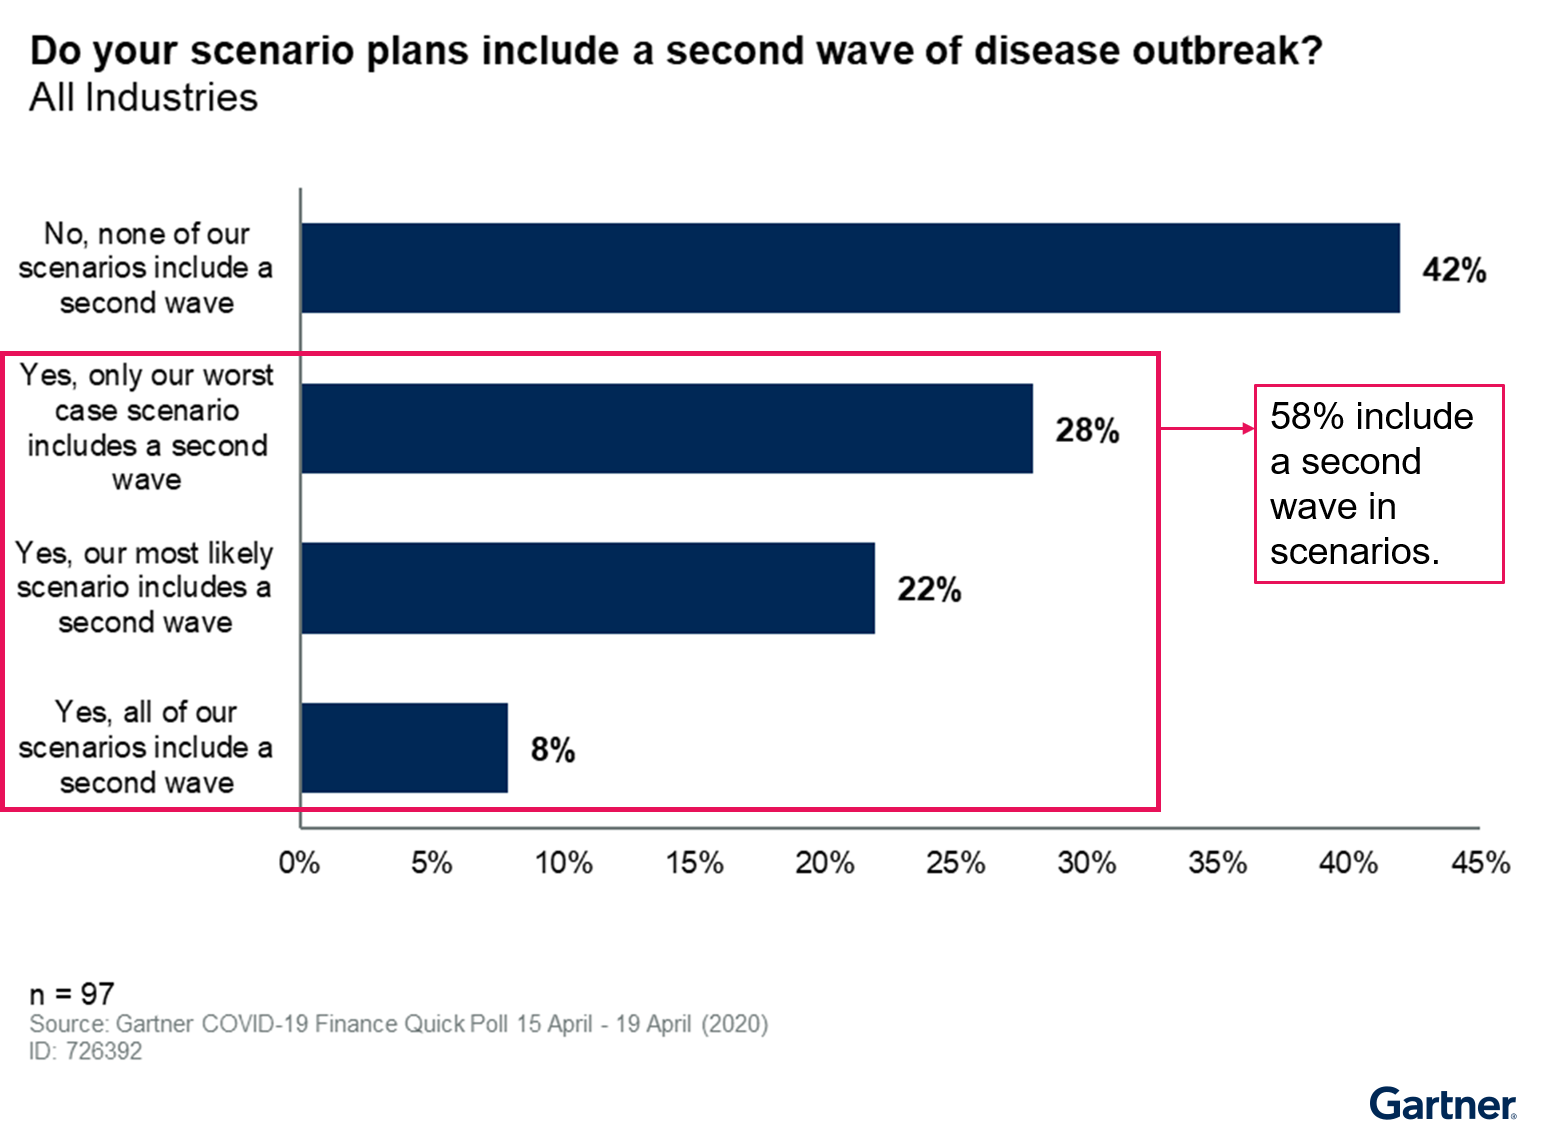 Do Your Scenario Plans Include a Second Wave of the Disease?